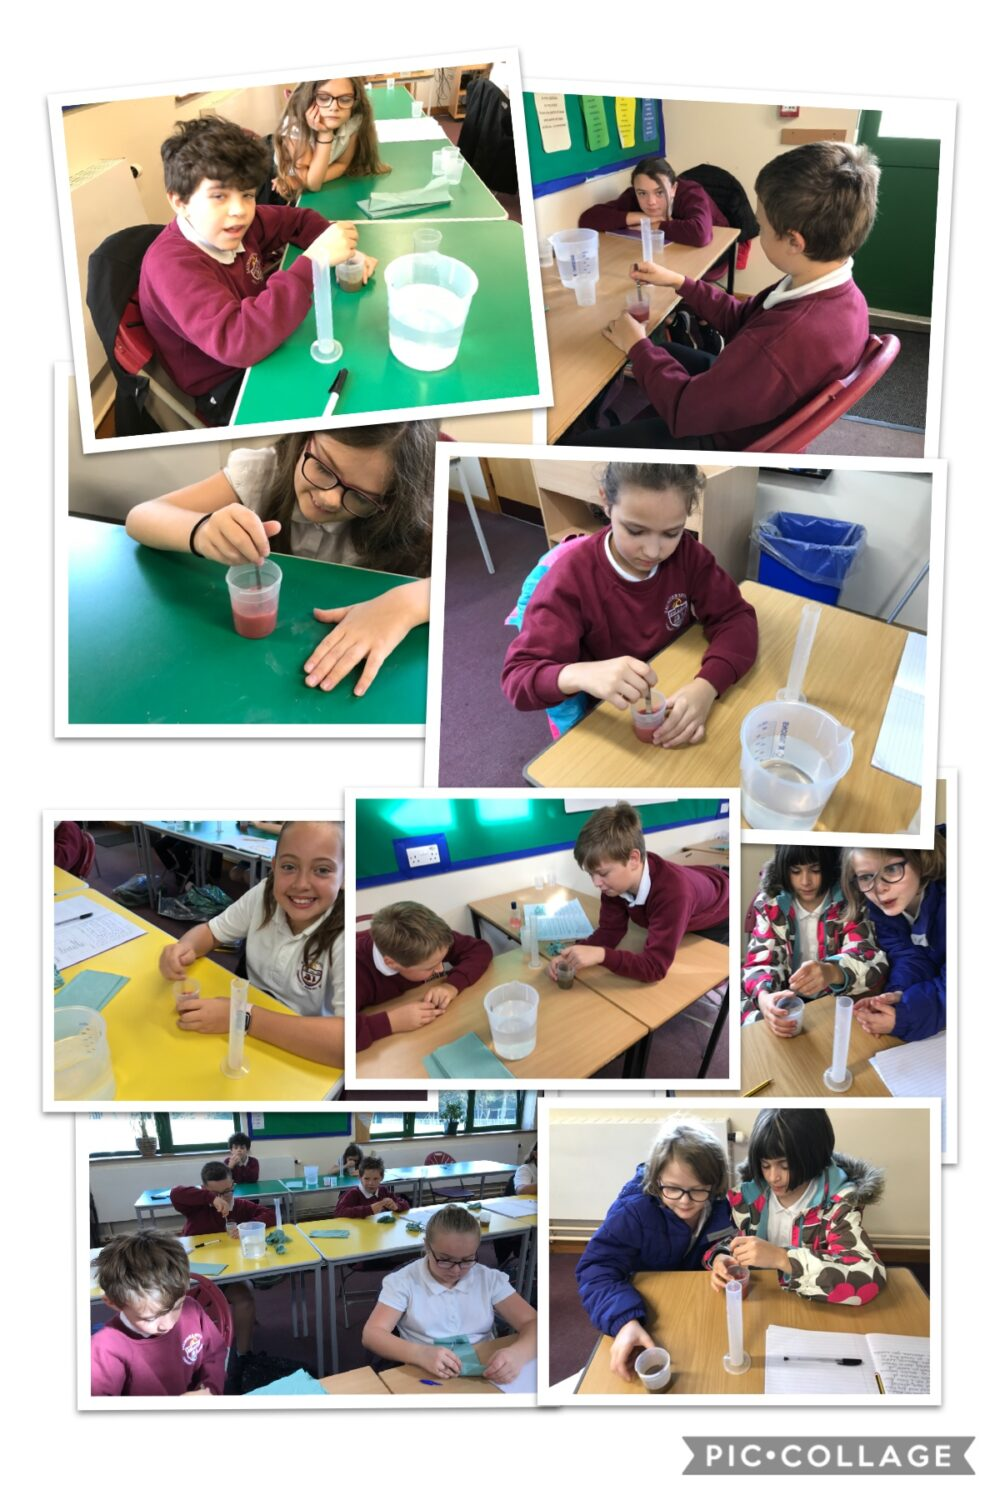 We are busy doing our Science Investigation here.